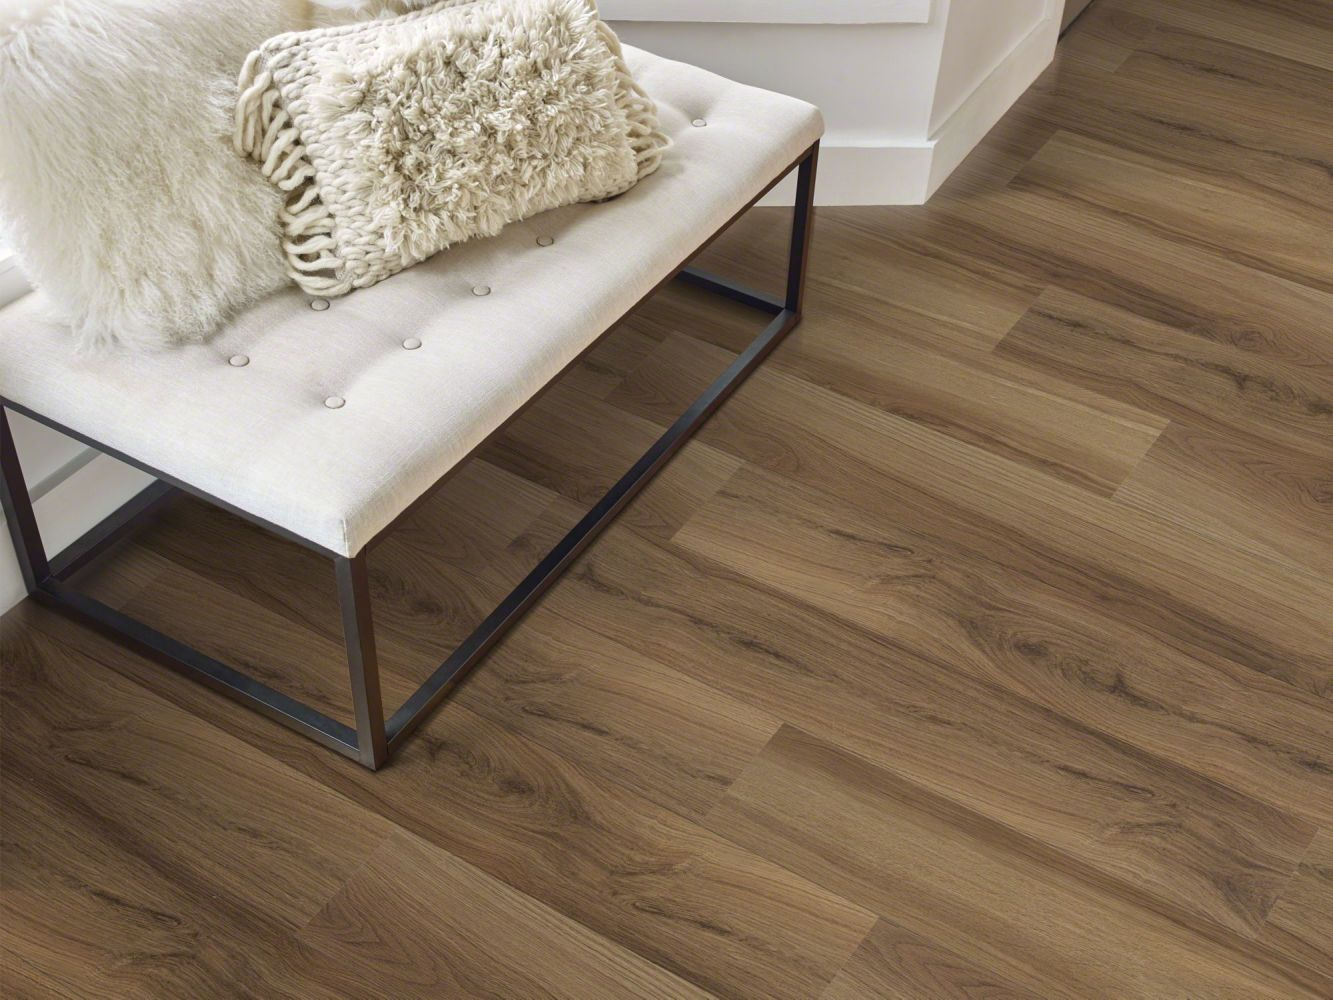 Shaw Floors Vinyl Residential Endura 512c Plus Hazel Oak 00762_0736V